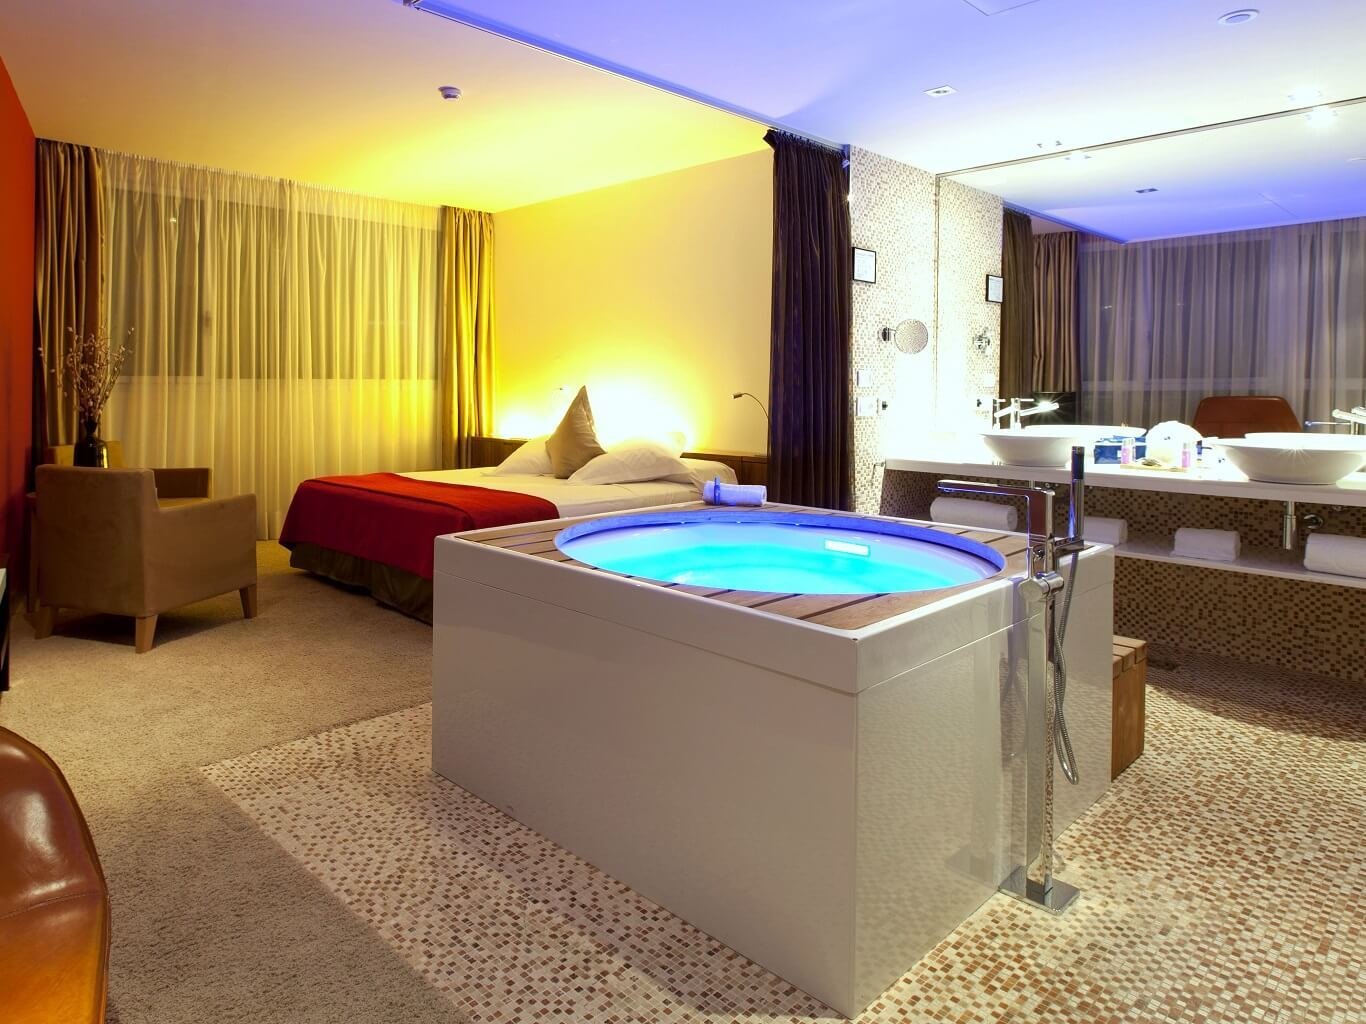 Hotels With Jetted Tubs In Room Near Me